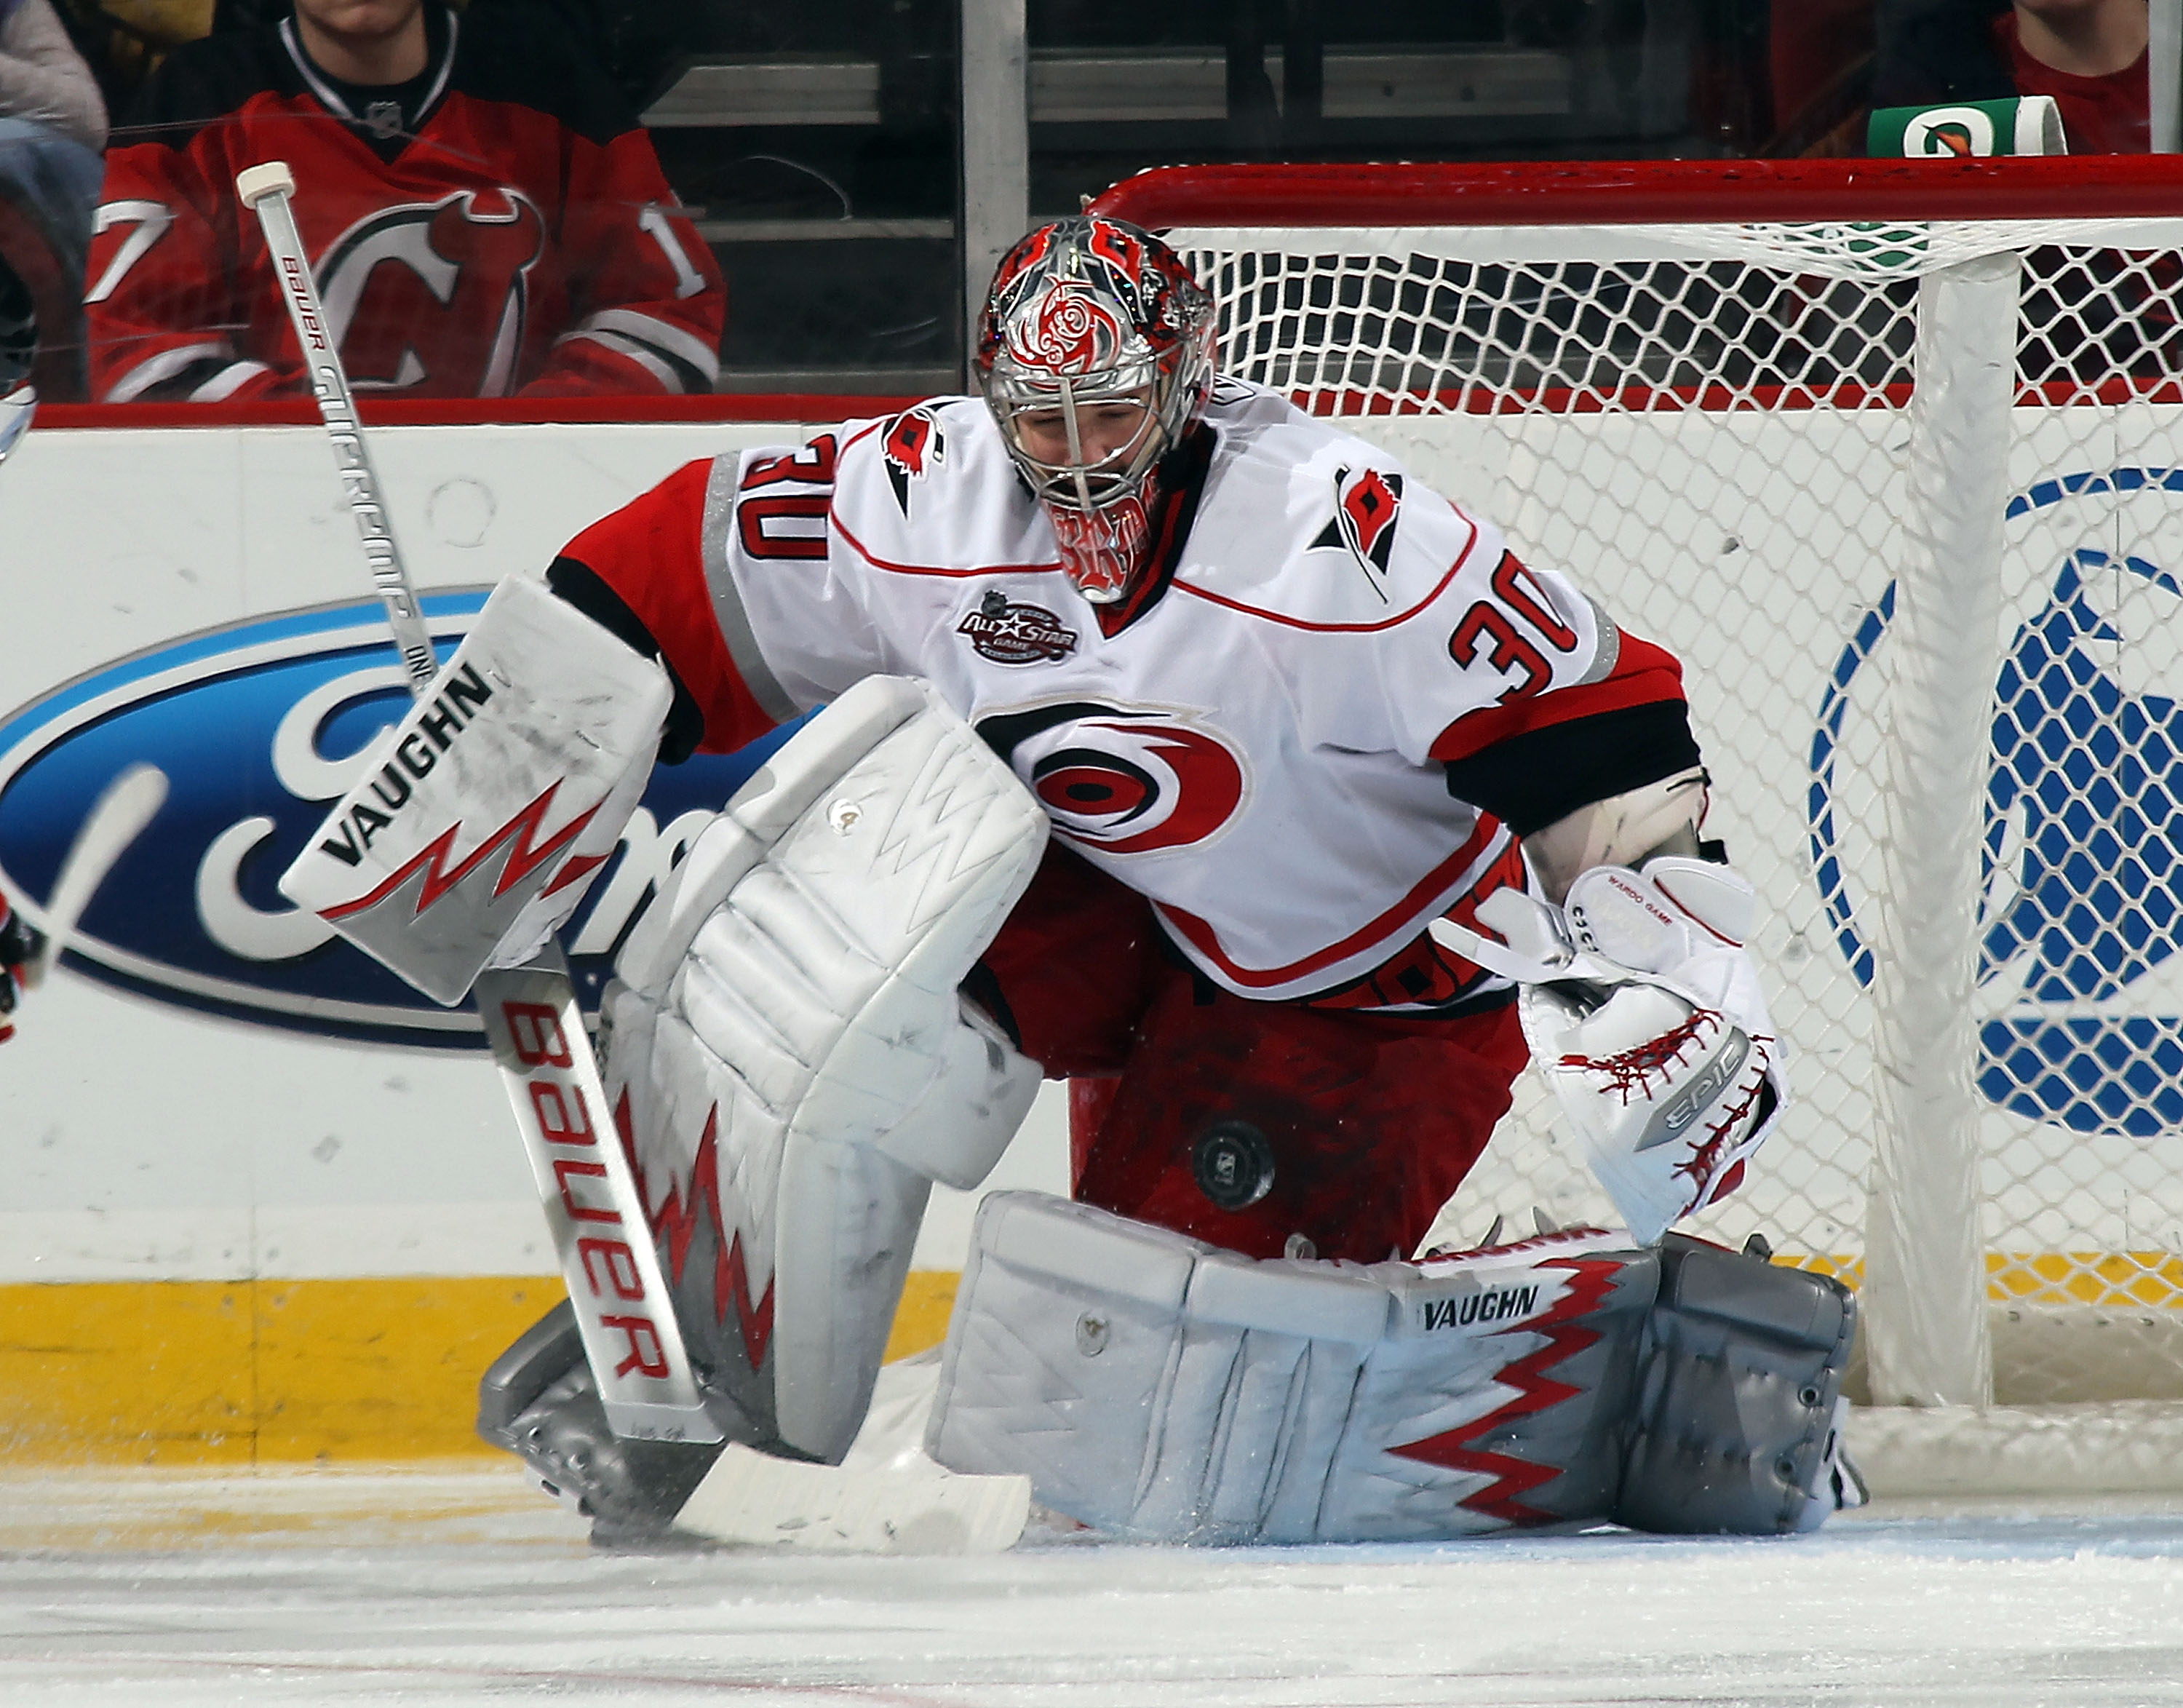 e9a4dca03 NHL  The Top 100 Goaltenders in NHL History